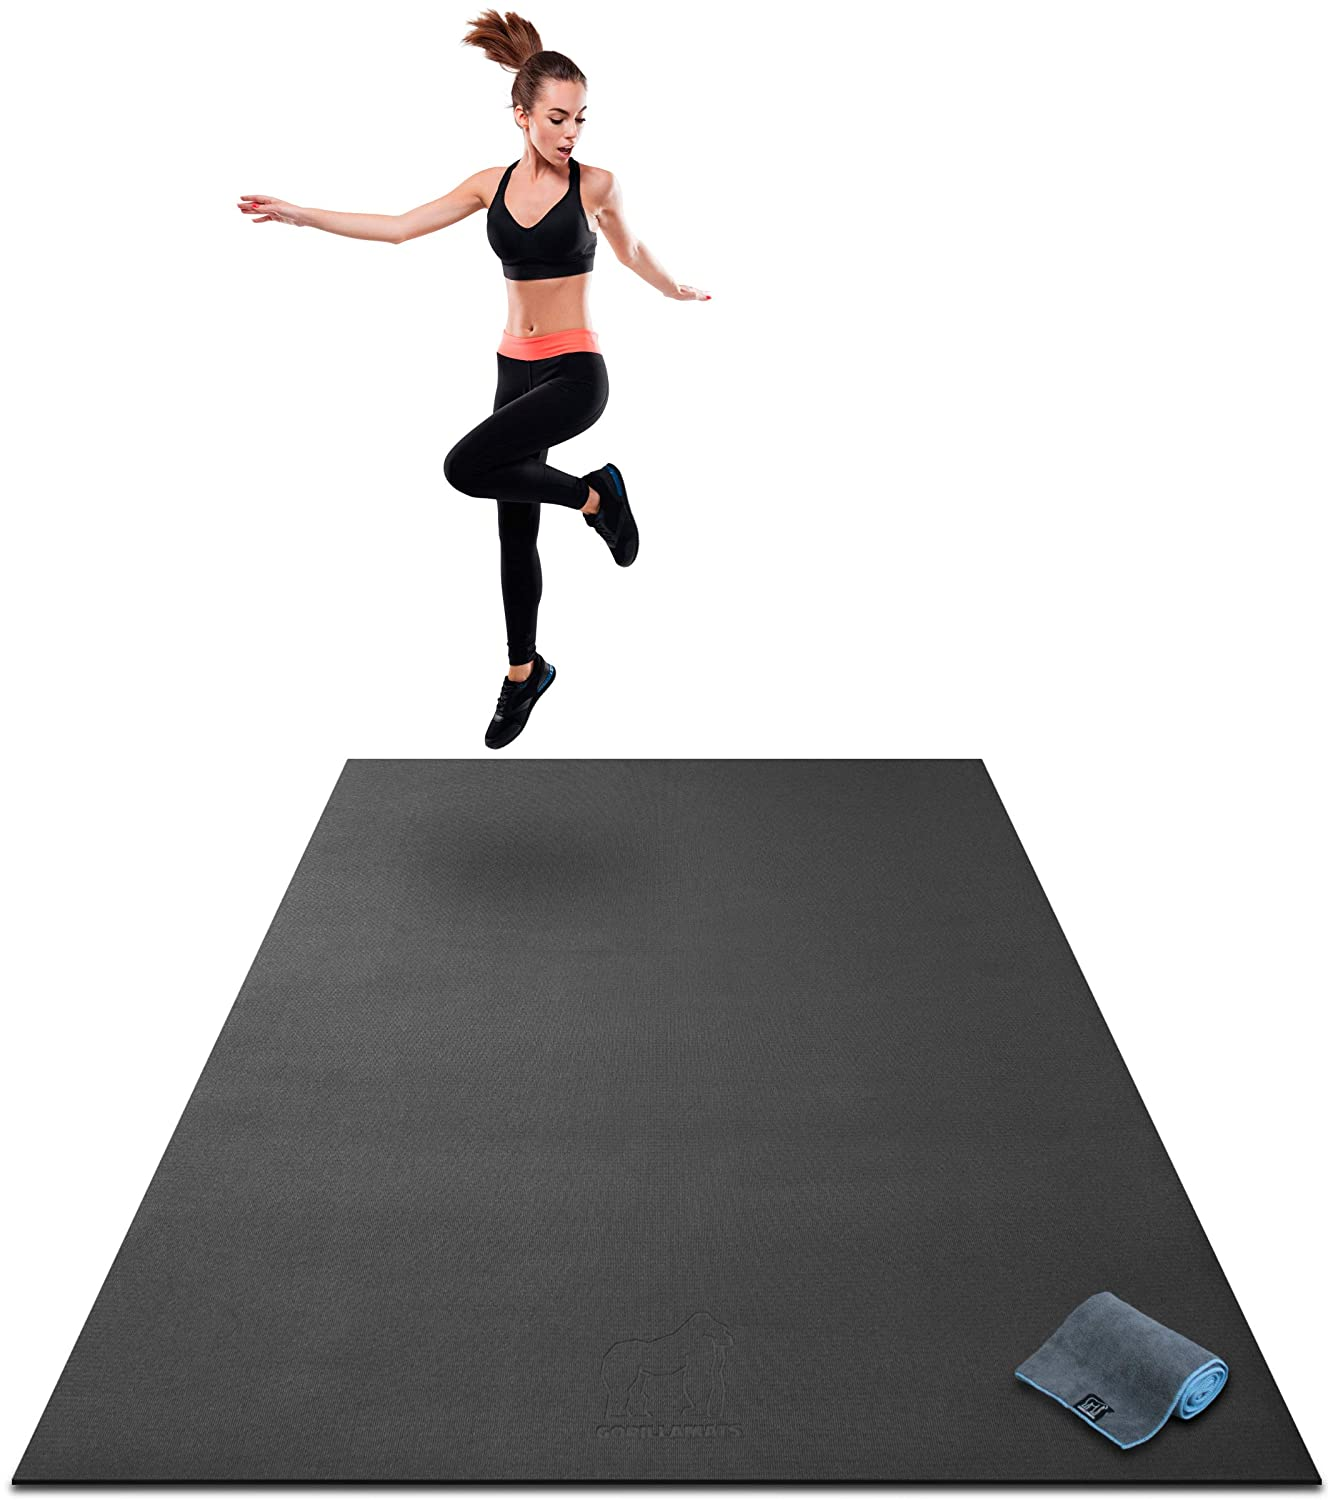 "Premium Extra Large Exercise Mat - 7' x 5' x 1/4"" Ultra Durable, Non-Slip, Workout Mats for Home Gym Flooring - Jump, Cardio, MMA Mat - Use with or Without Shoes (84"" Long x 60"" Wide x 6mm Thick)"